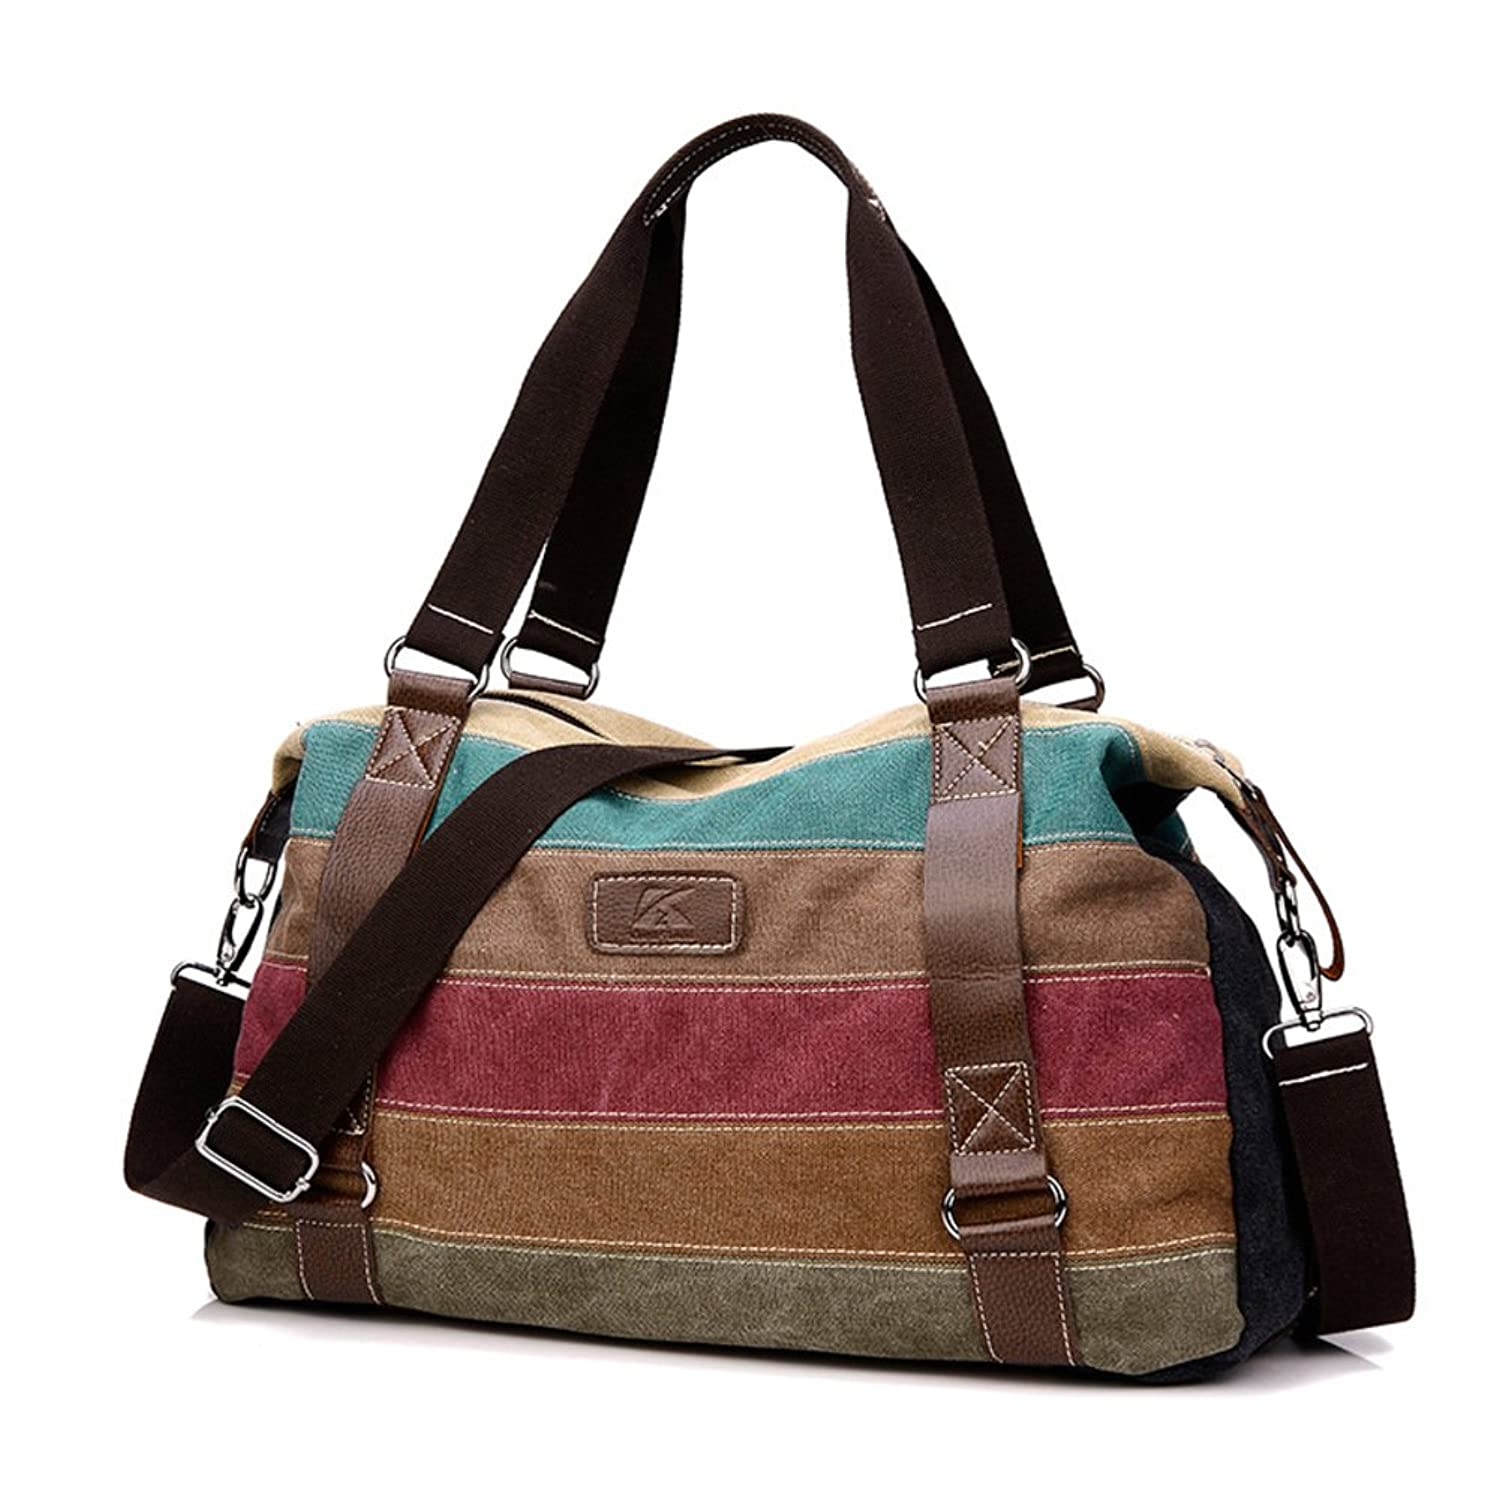 Ladies hit the color simple shoulder bag/Fashion casual mobile/single messager bag